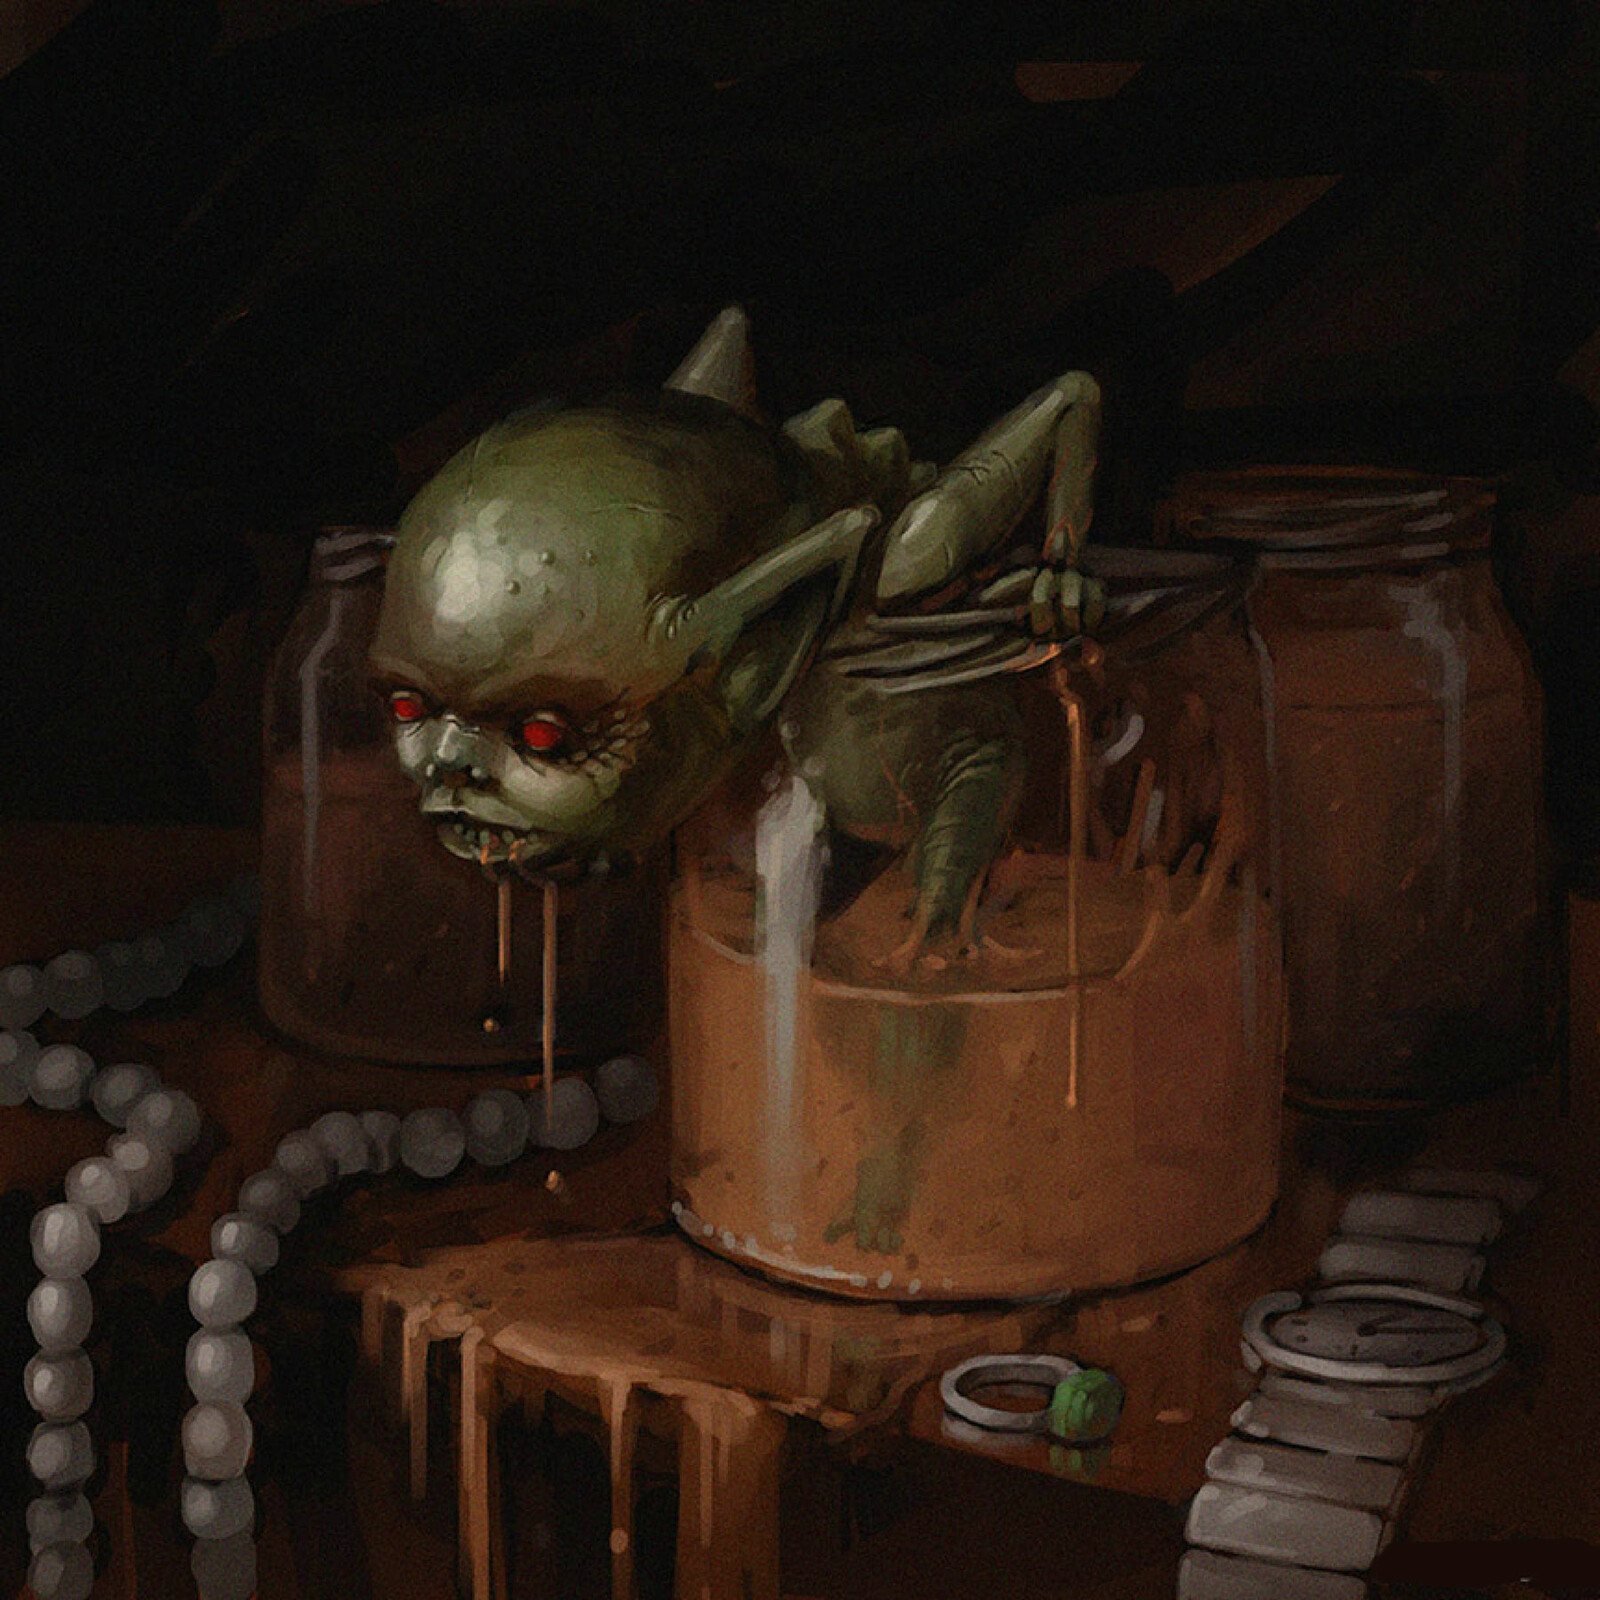 The Toyol. A small imp bred in jars. If sufficiently fed with the blood of their owners, they will prowl the night doing their master's bidding, usually stealing from their enemies.